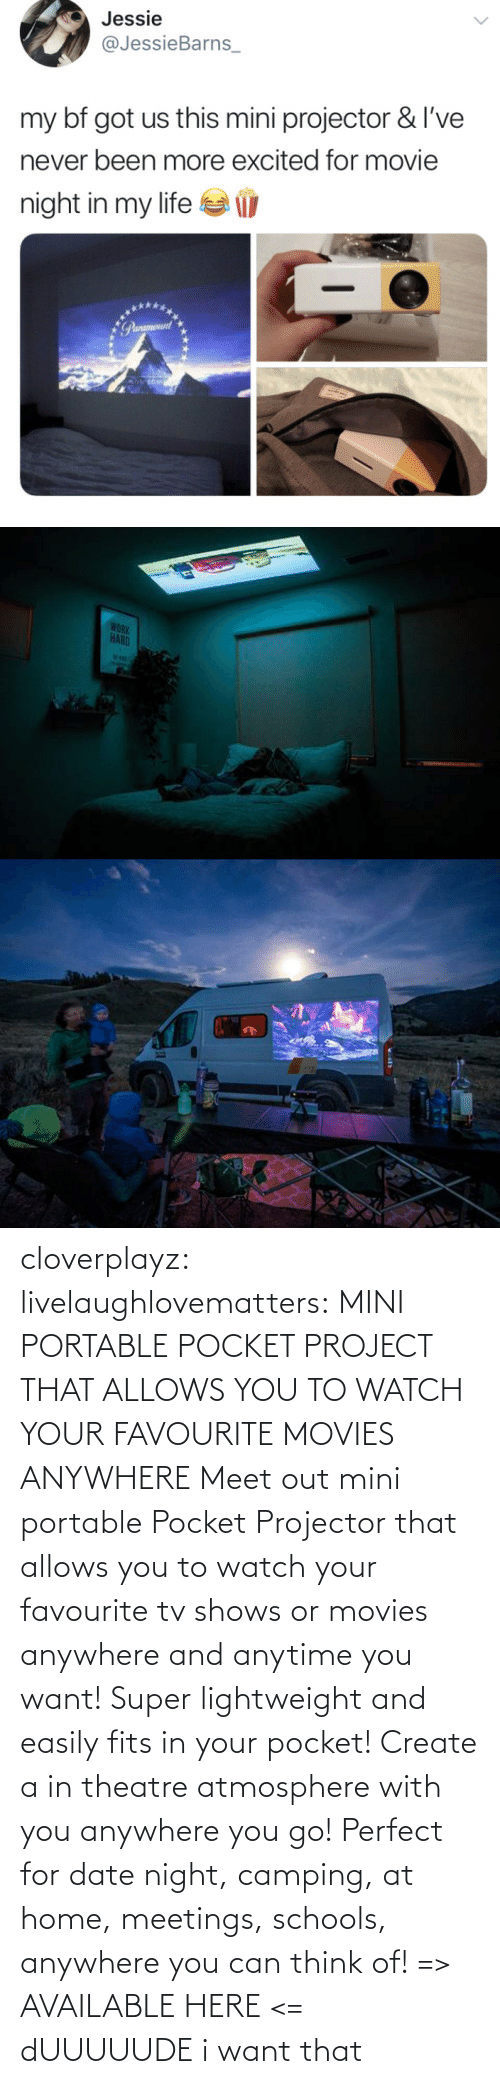 Theatre: cloverplayz: livelaughlovematters:  MINI PORTABLE POCKET PROJECT THAT ALLOWS YOU TO WATCH YOUR FAVOURITE MOVIES ANYWHERE Meet out mini portable Pocket Projector that allows you to watch your favourite tv shows or movies anywhere and anytime you want! Super lightweight and easily fits in your pocket! Create a in theatre atmosphere with you anywhere you go! Perfect for date night, camping, at home, meetings, schools, anywhere you can think of! => AVAILABLE HERE <=  dUUUUUDE i want that